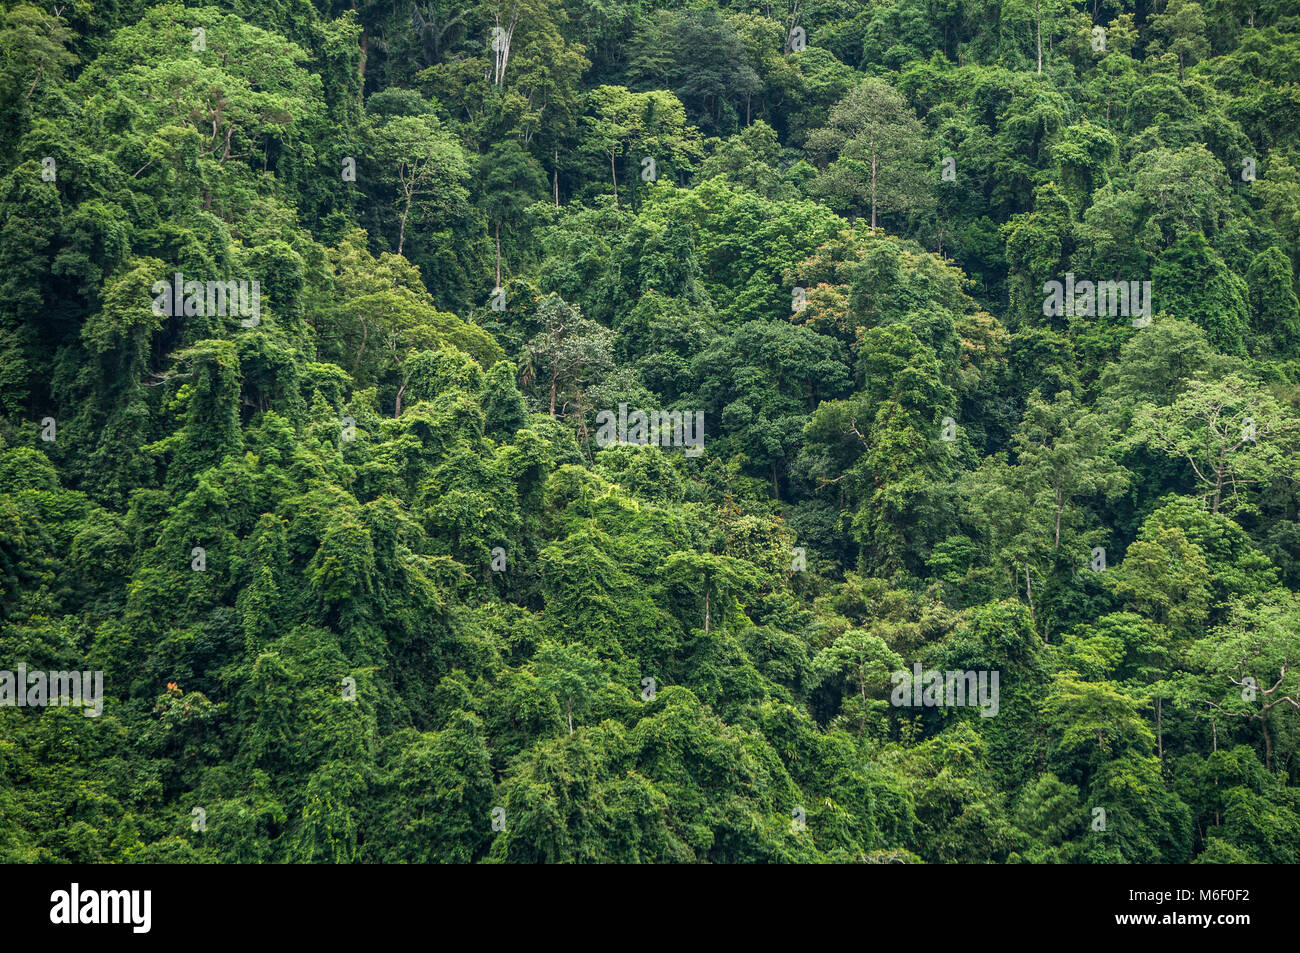 Thick, impenetrable jungle canopy in south Asia - Stock Image